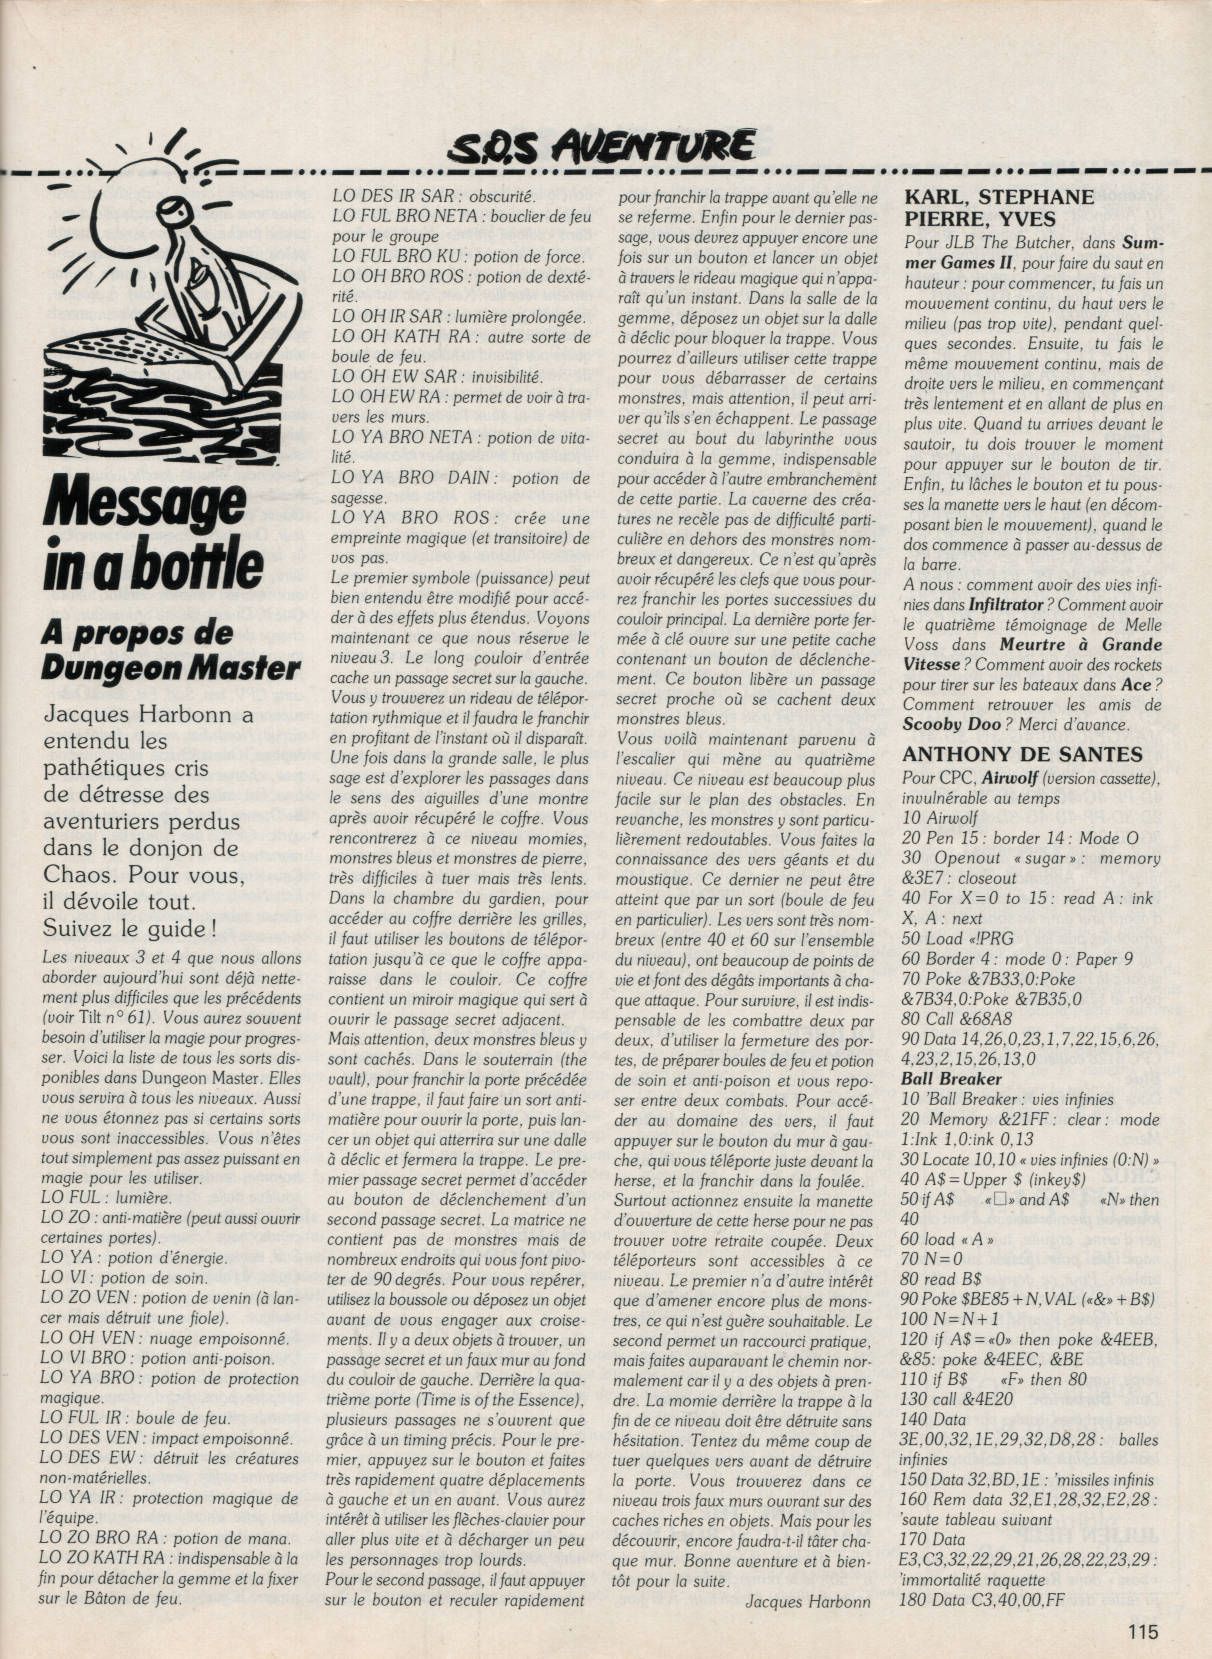 Dungeon Master Hints published in French magazine 'Tilt', Issue#62, January 1989, Page 115